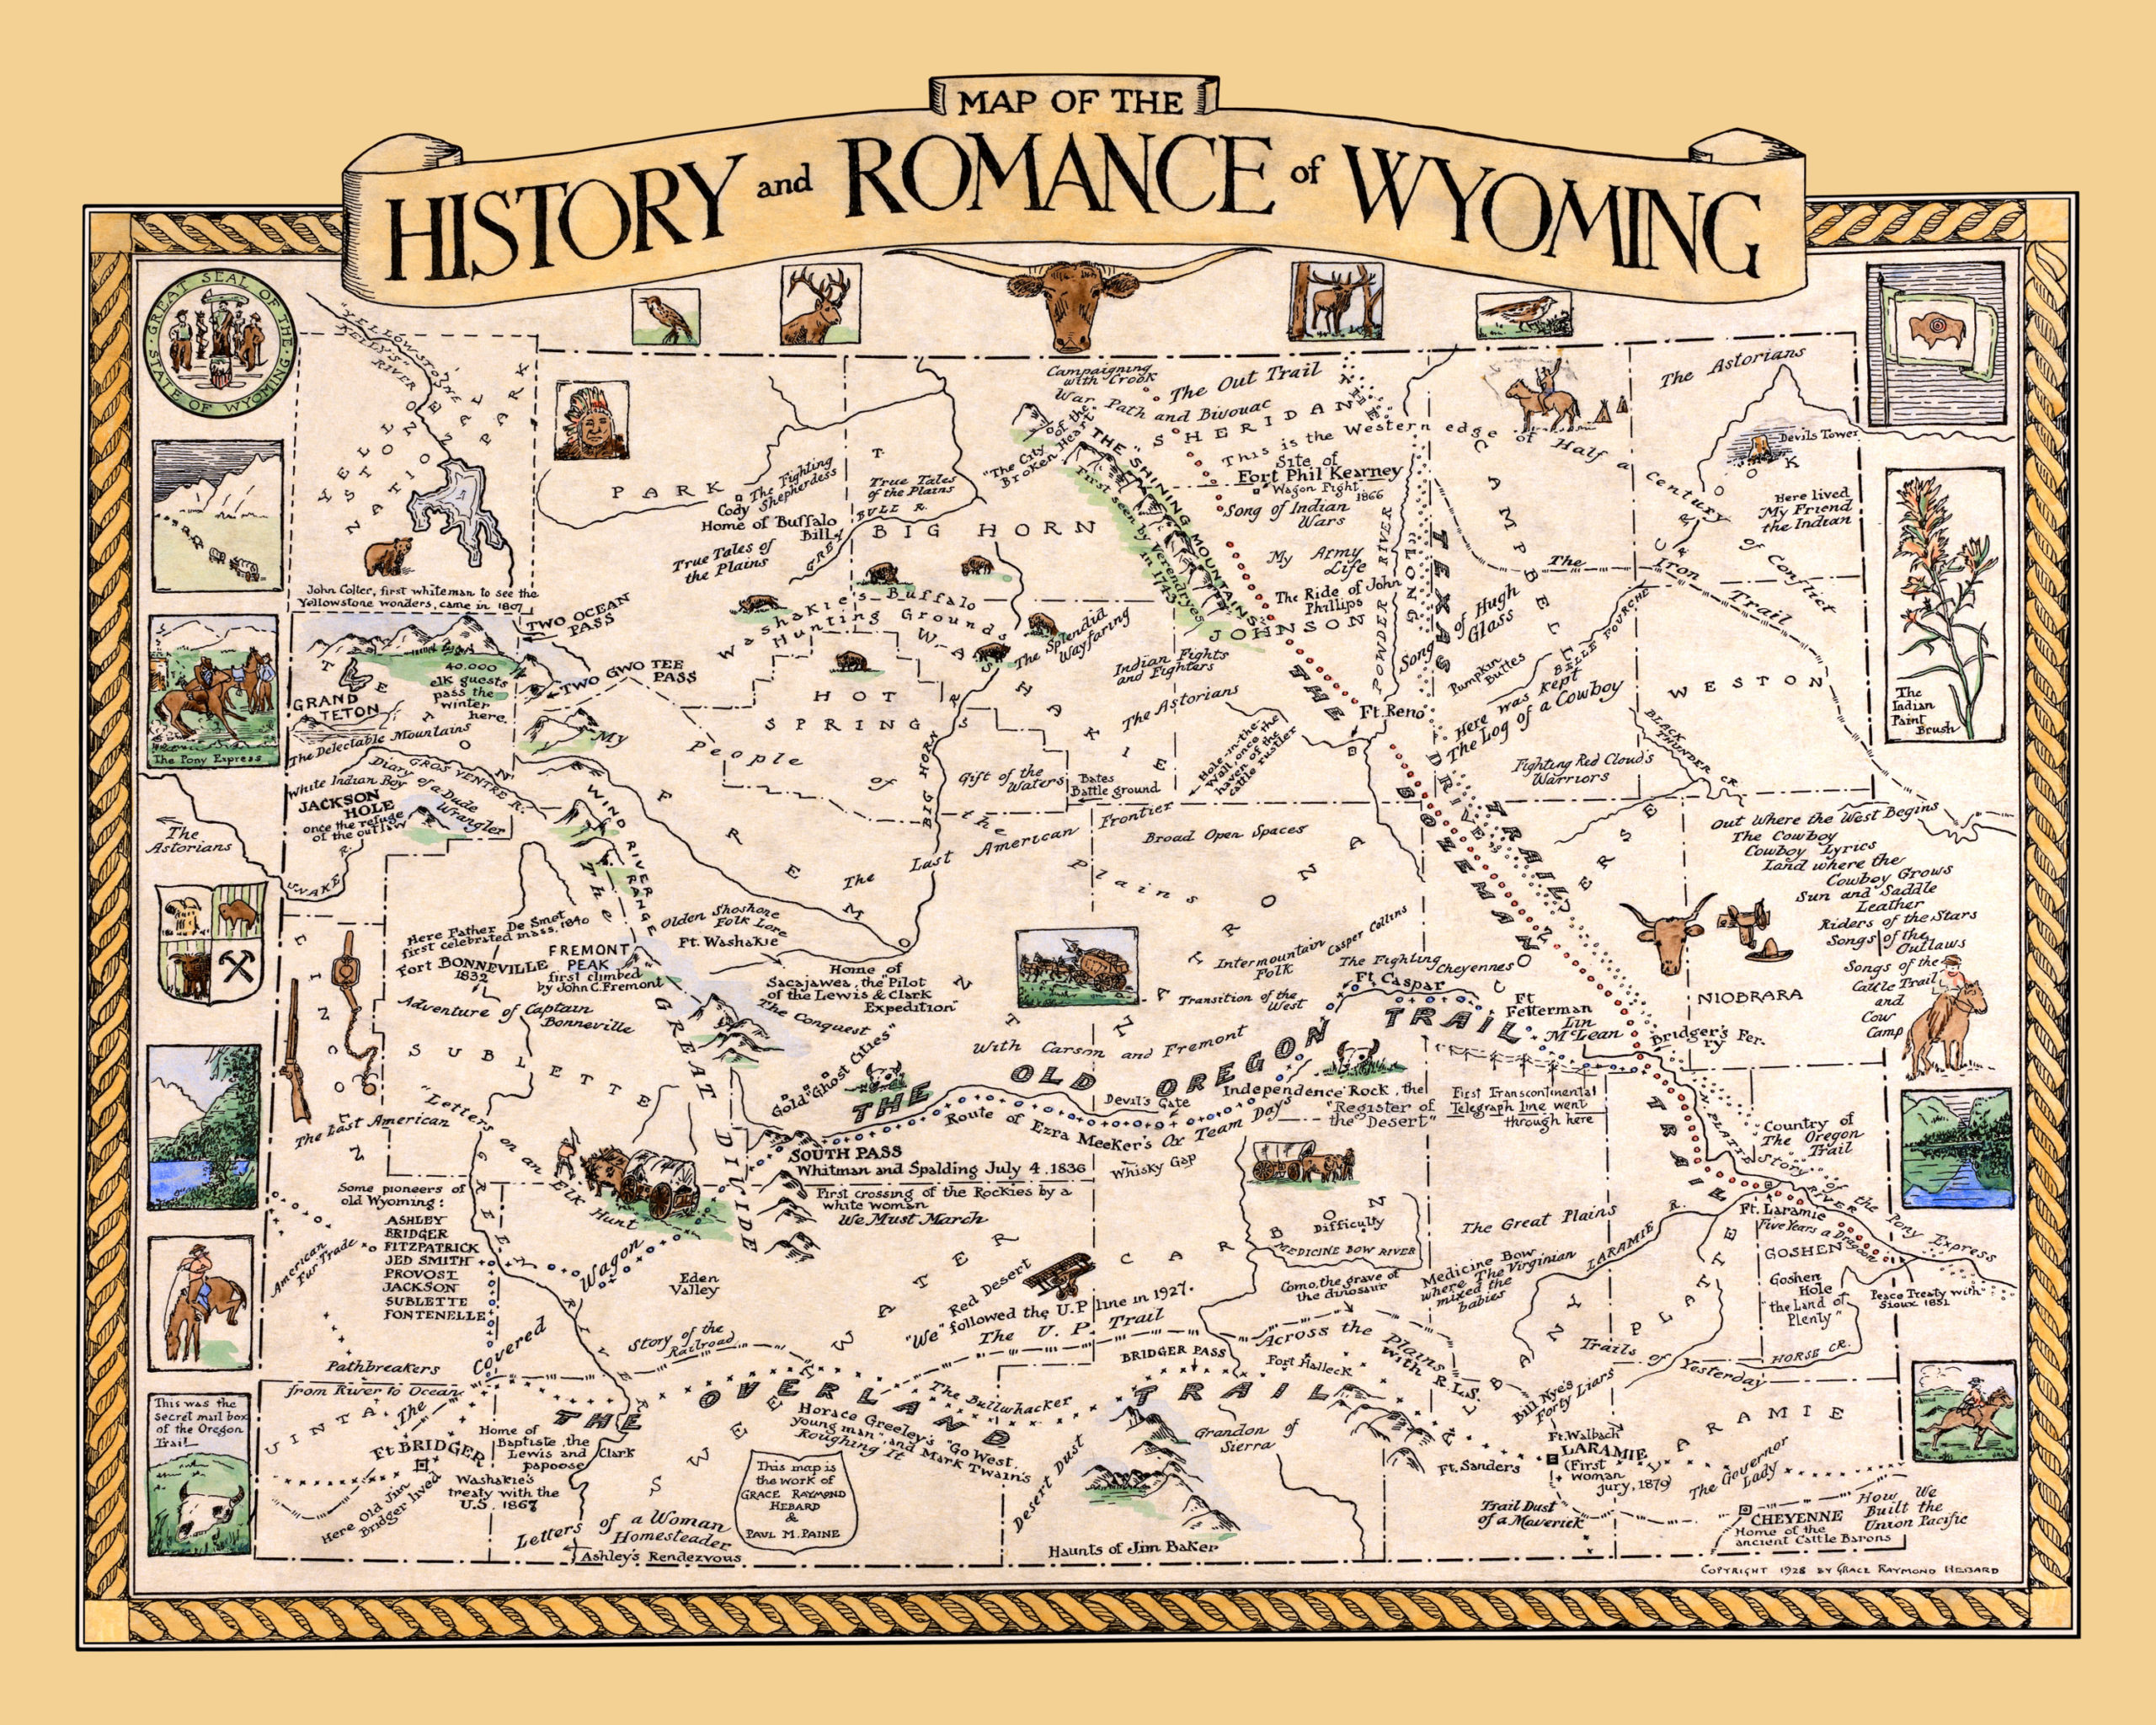 The History and Romance of Wyoming, beautifully detailed map